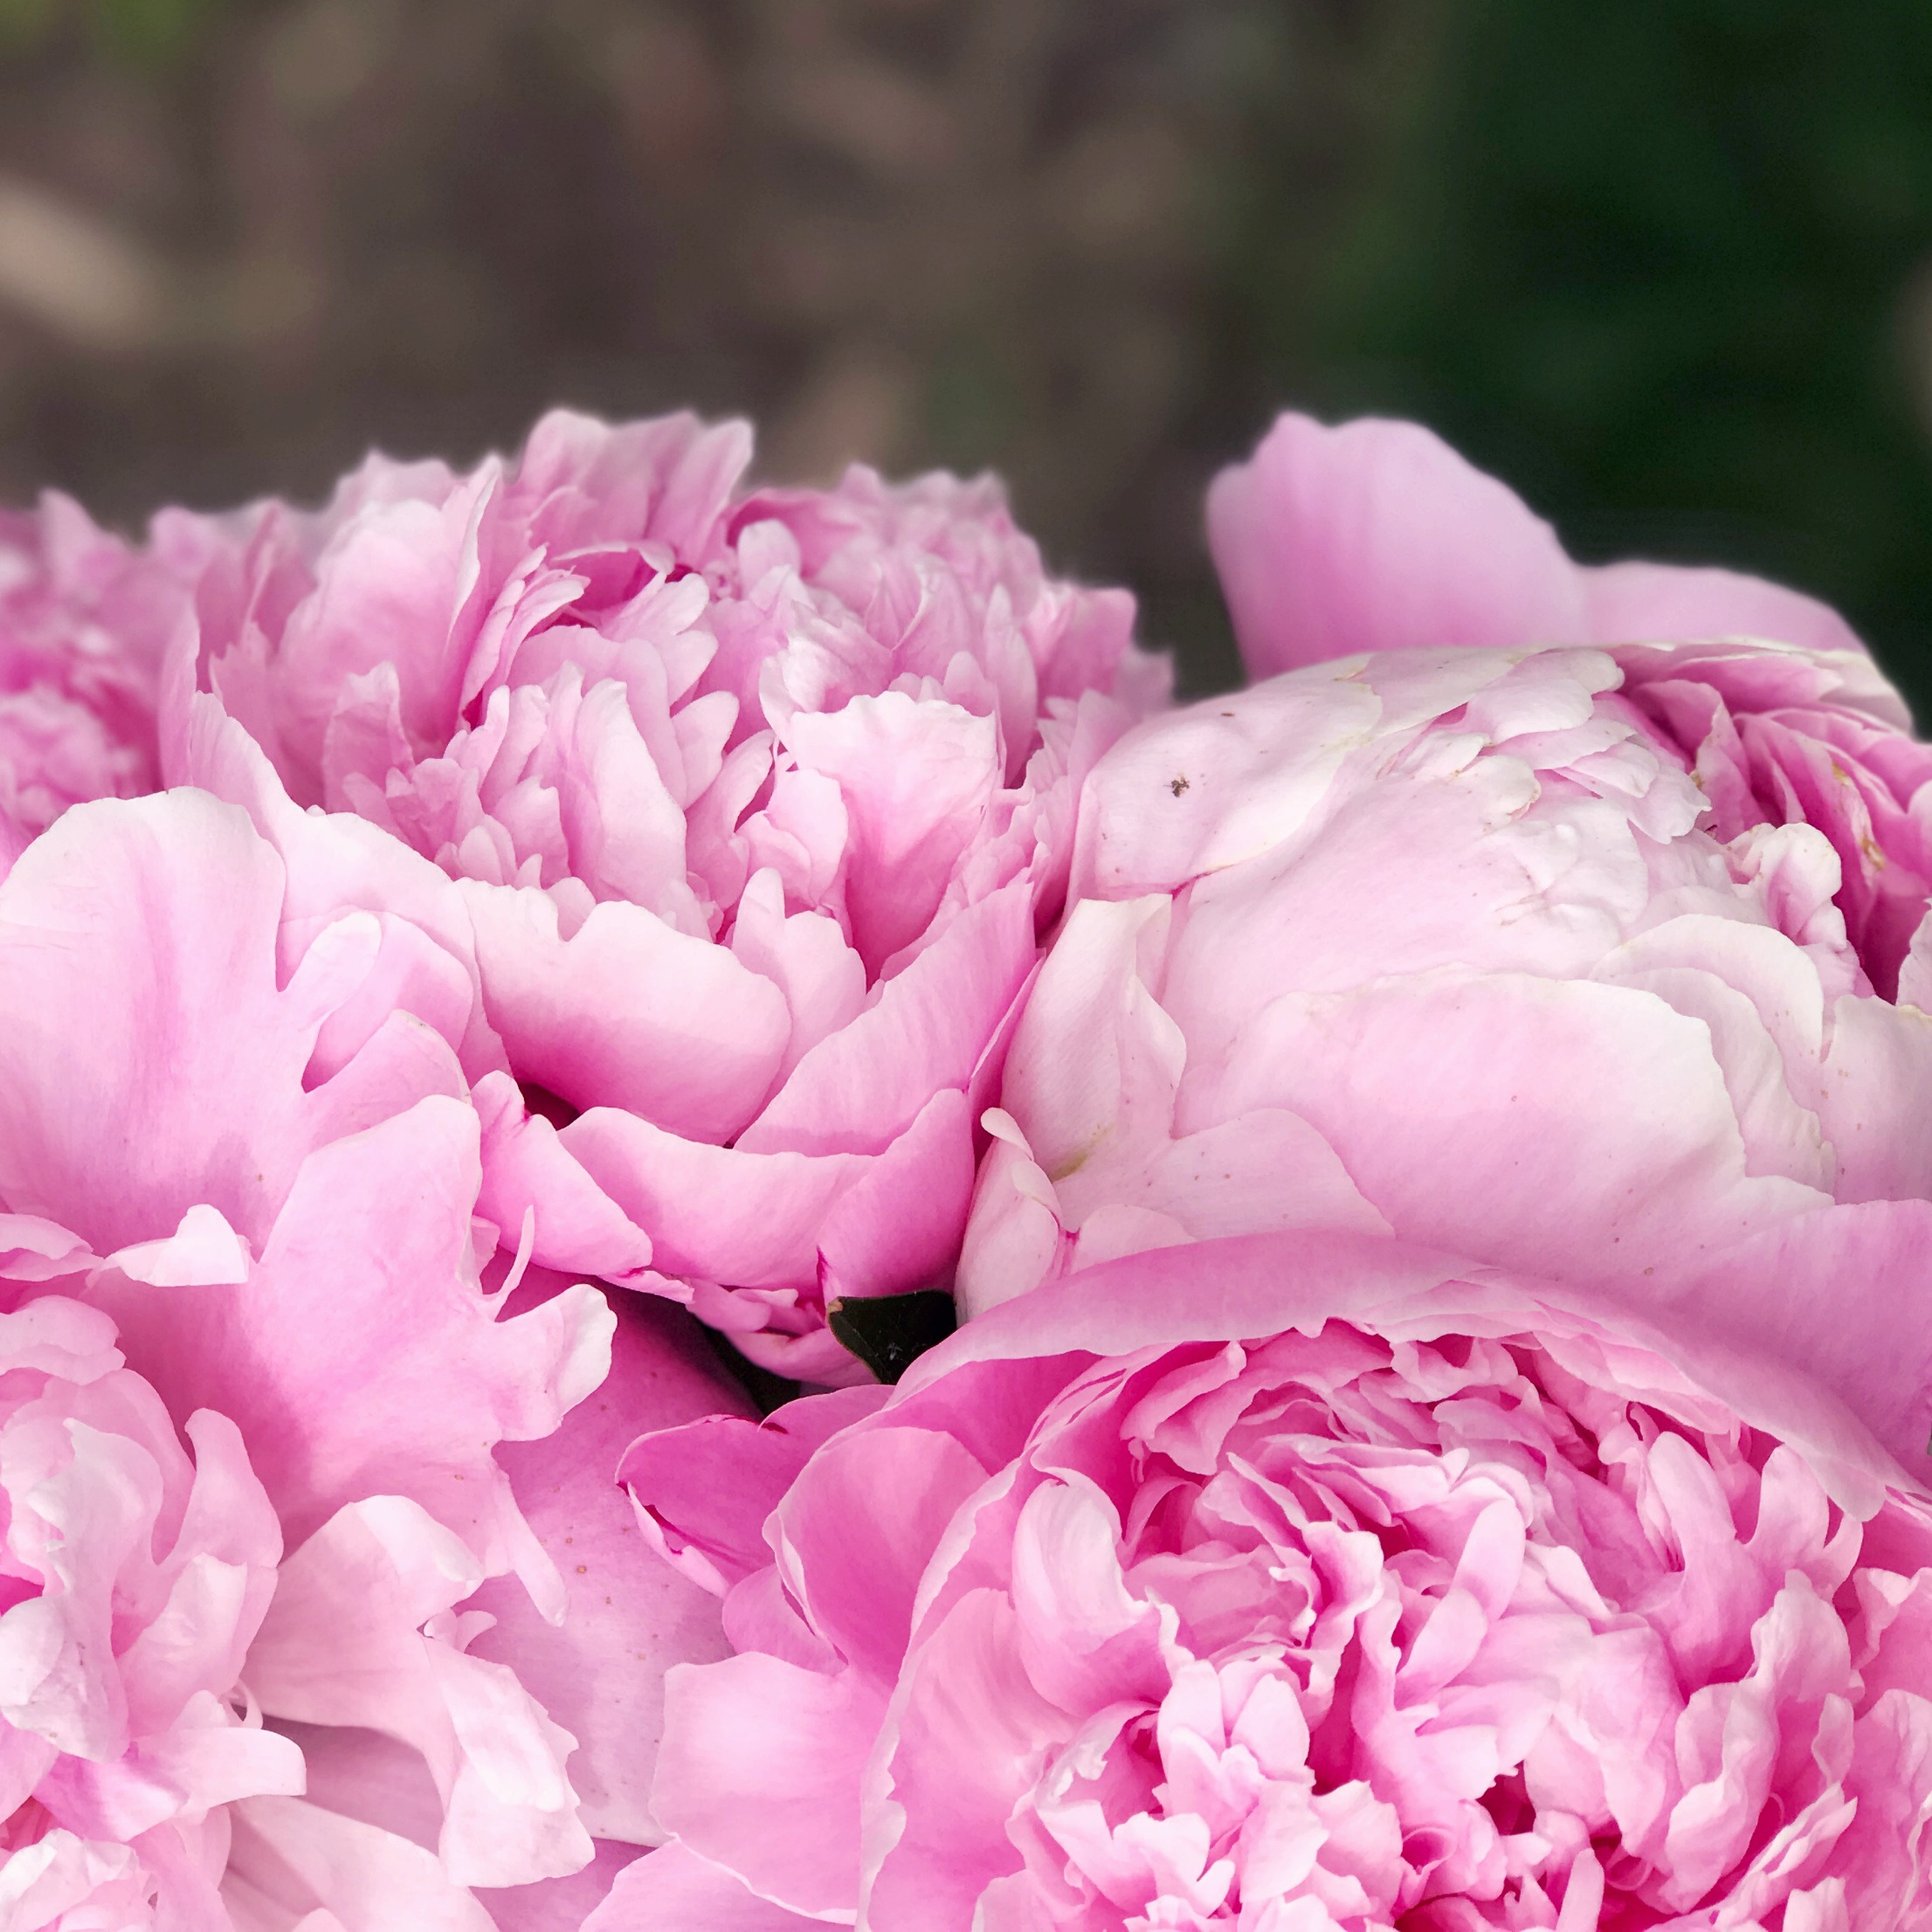 Tips for growing peonies: How to plant and establish a healthy peony plant.